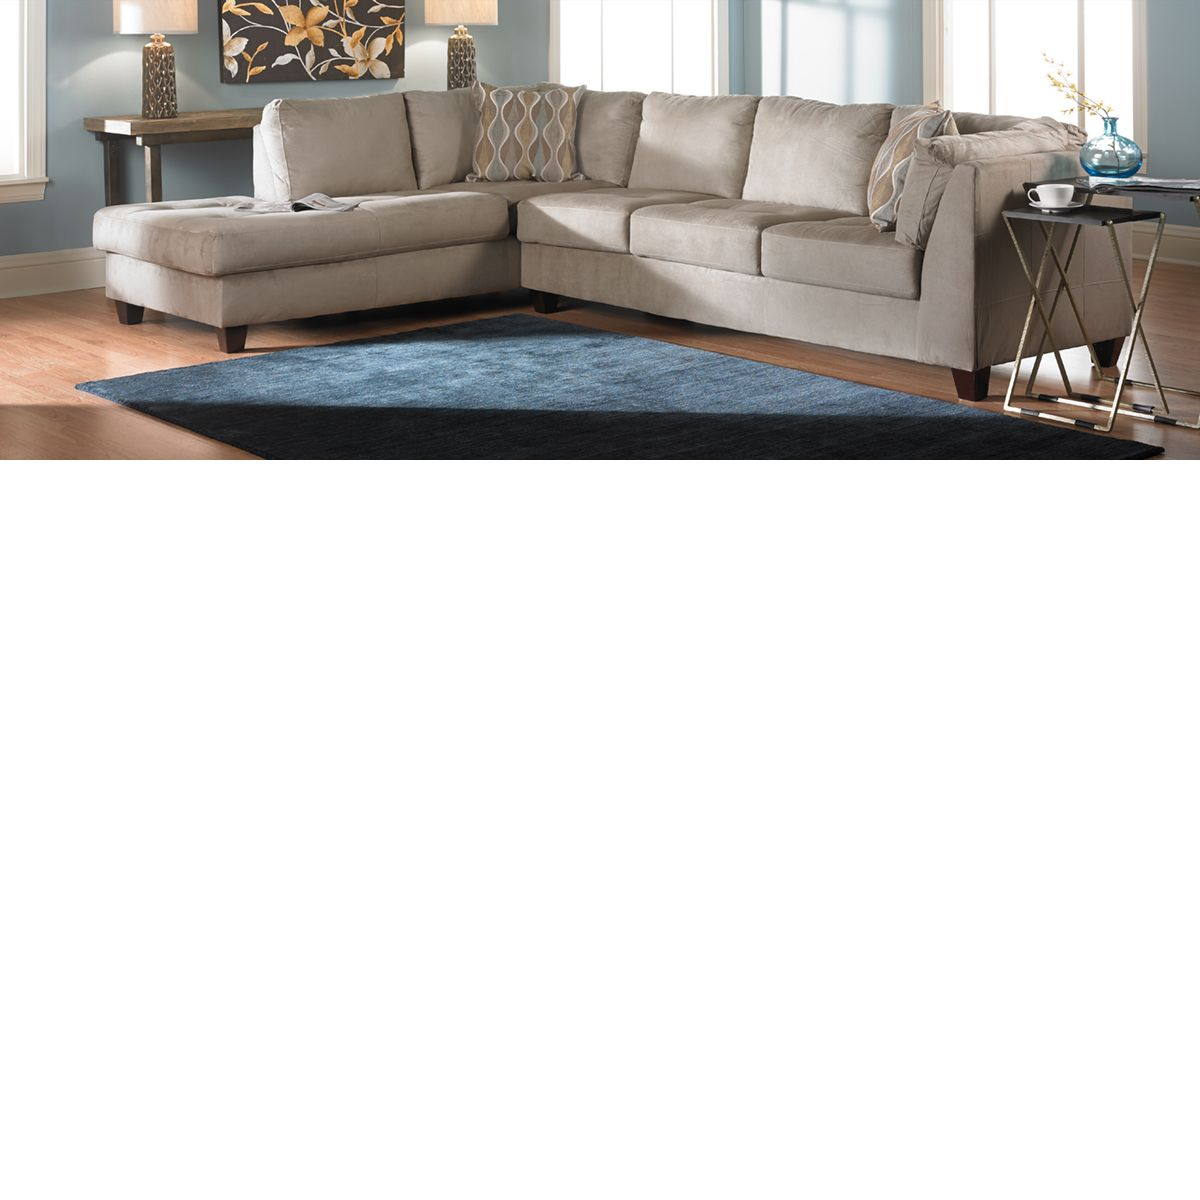 The dump furniture sectional sofa for the home for The dump furniture